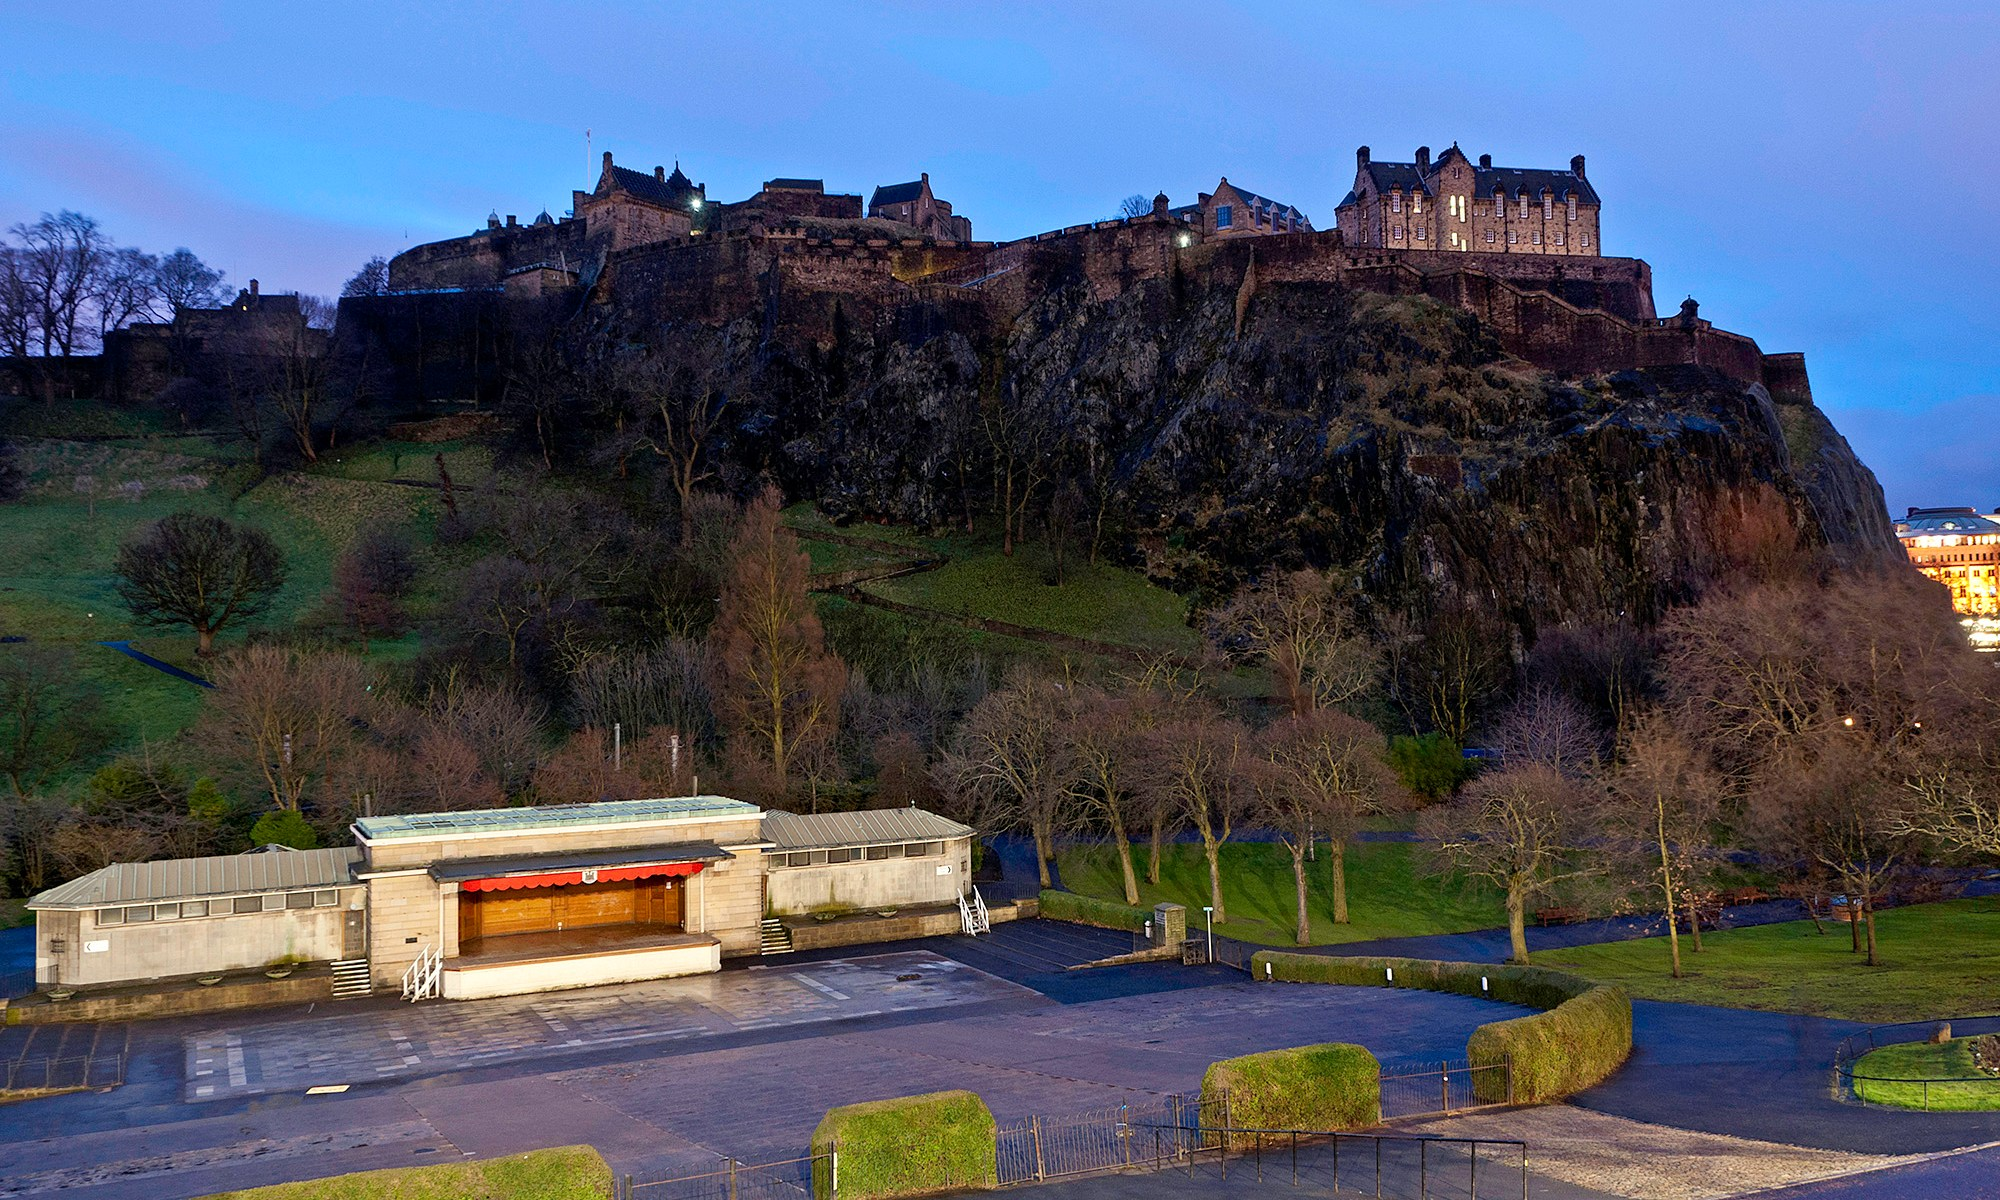 Ross Bandstand at Princes Street Gardens Edinburgh